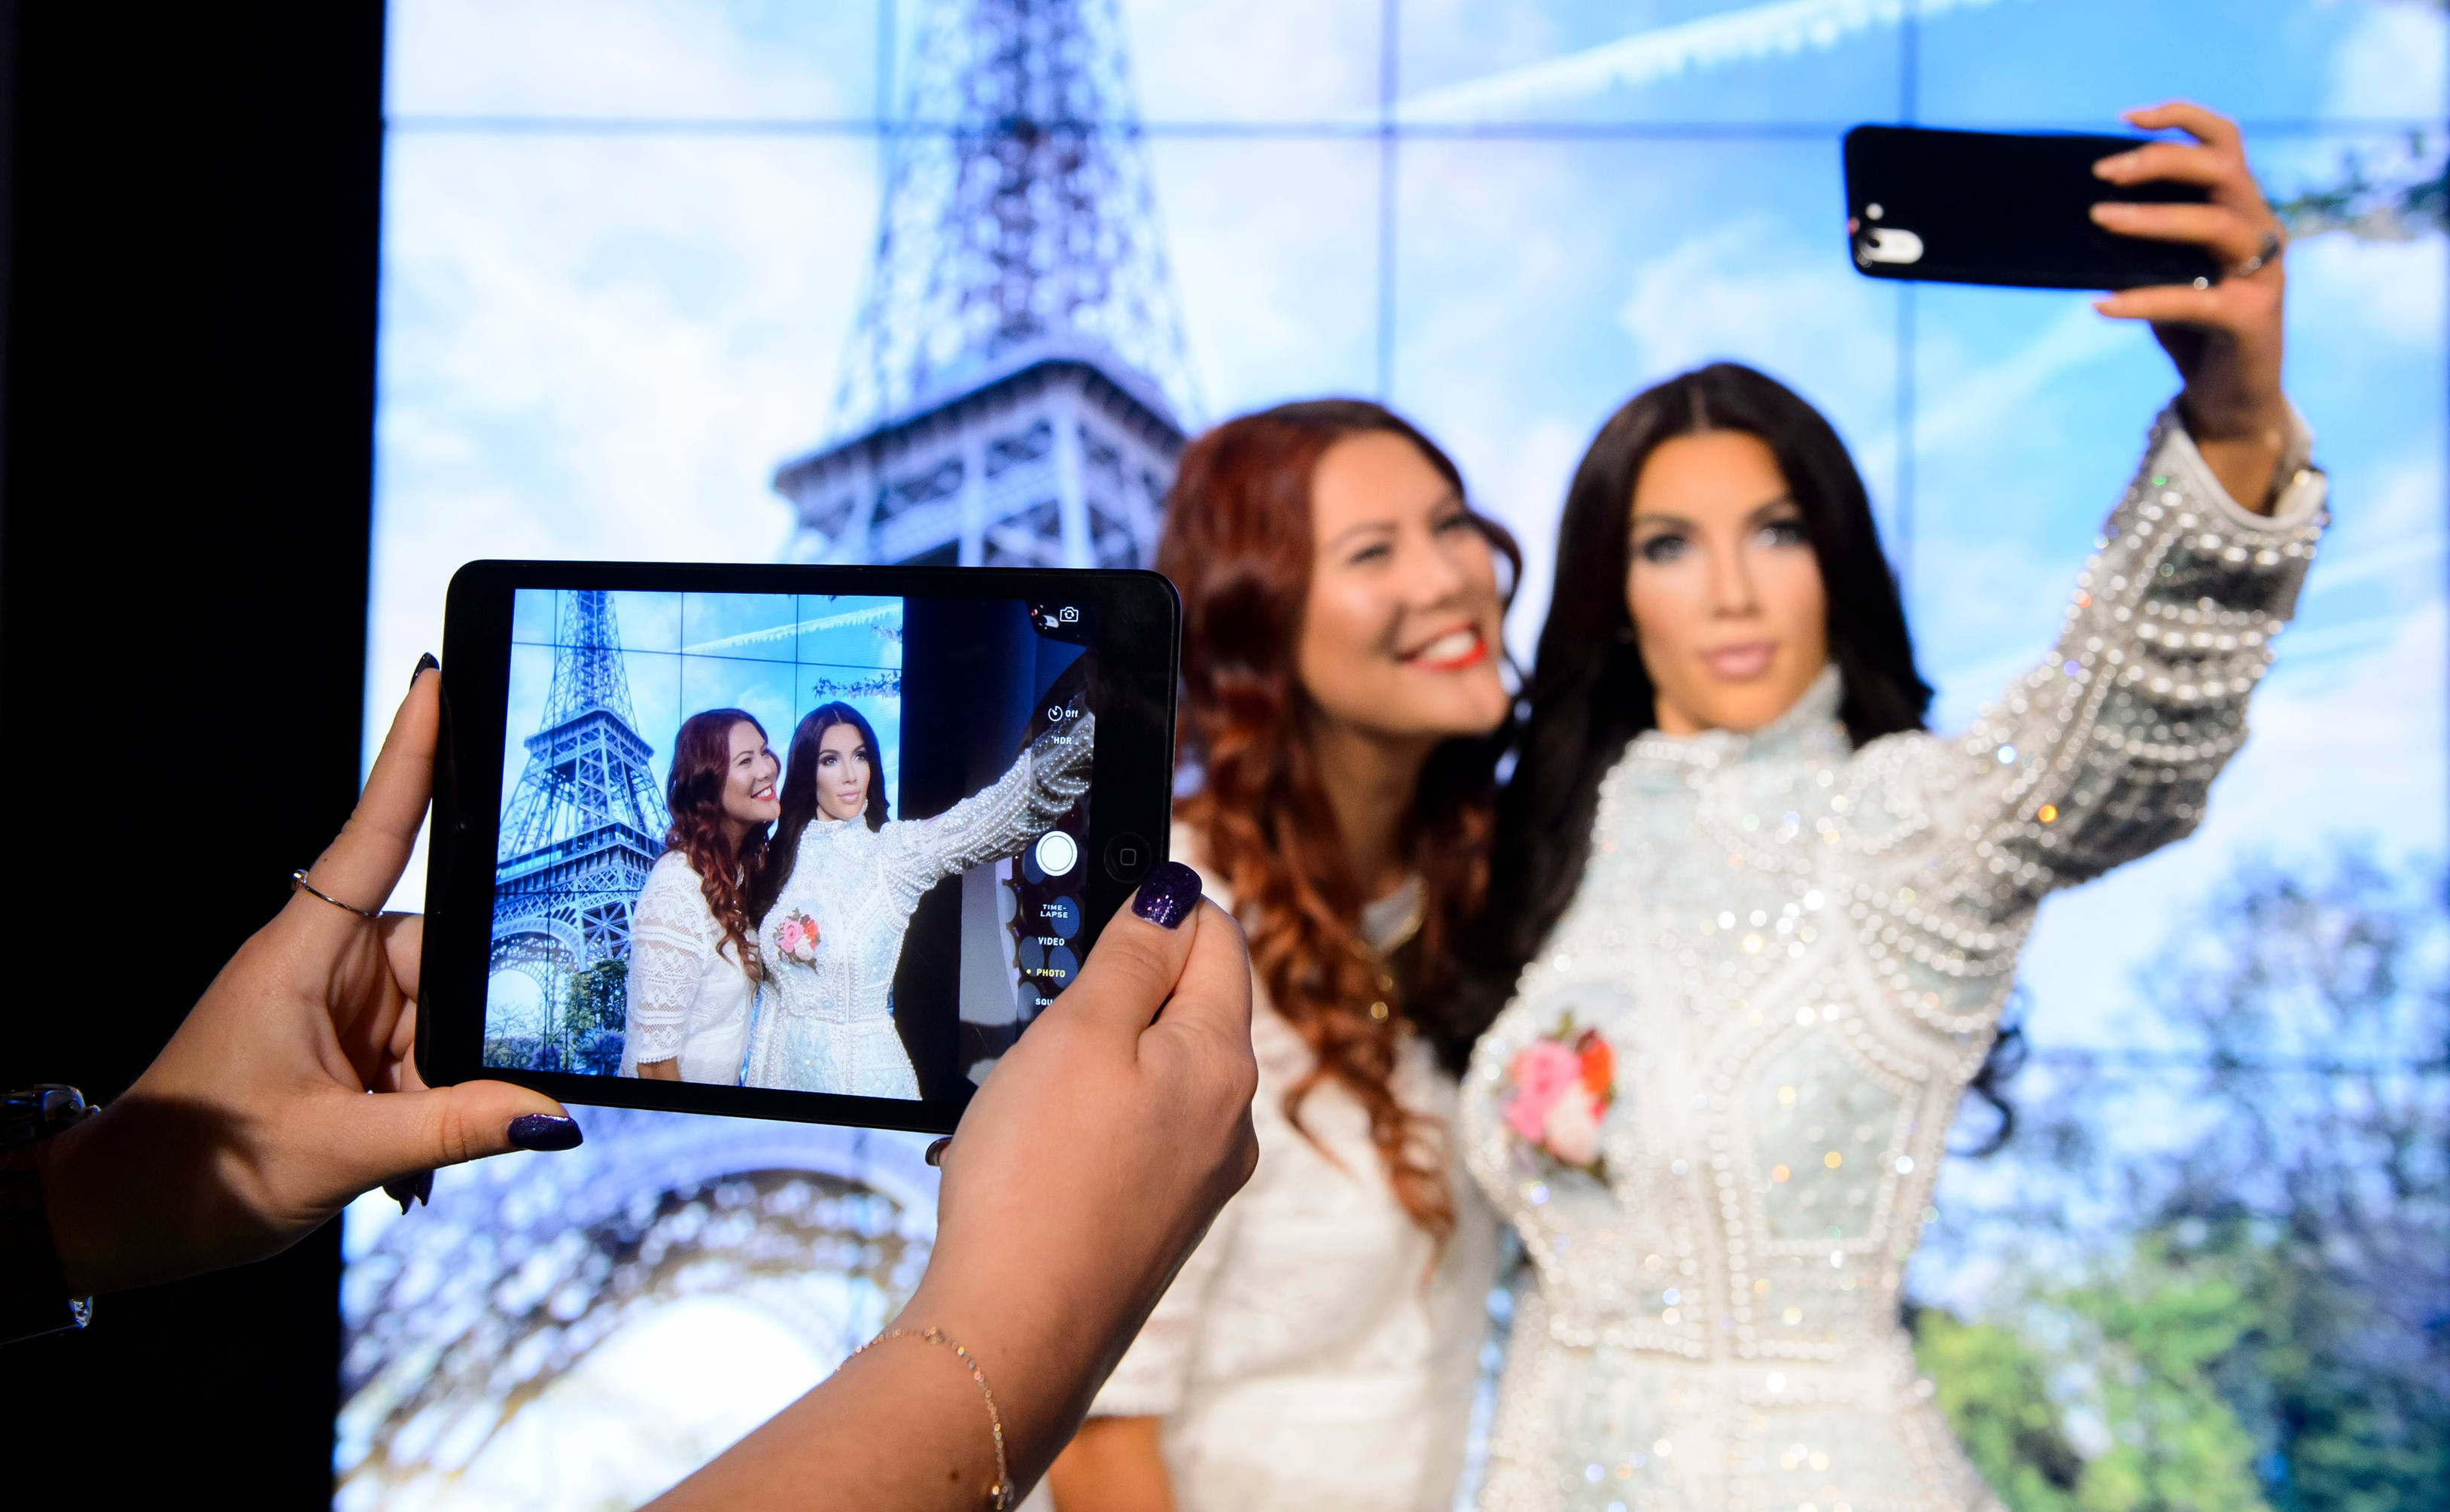 How the Selfie Effect is Disrupting the Industry